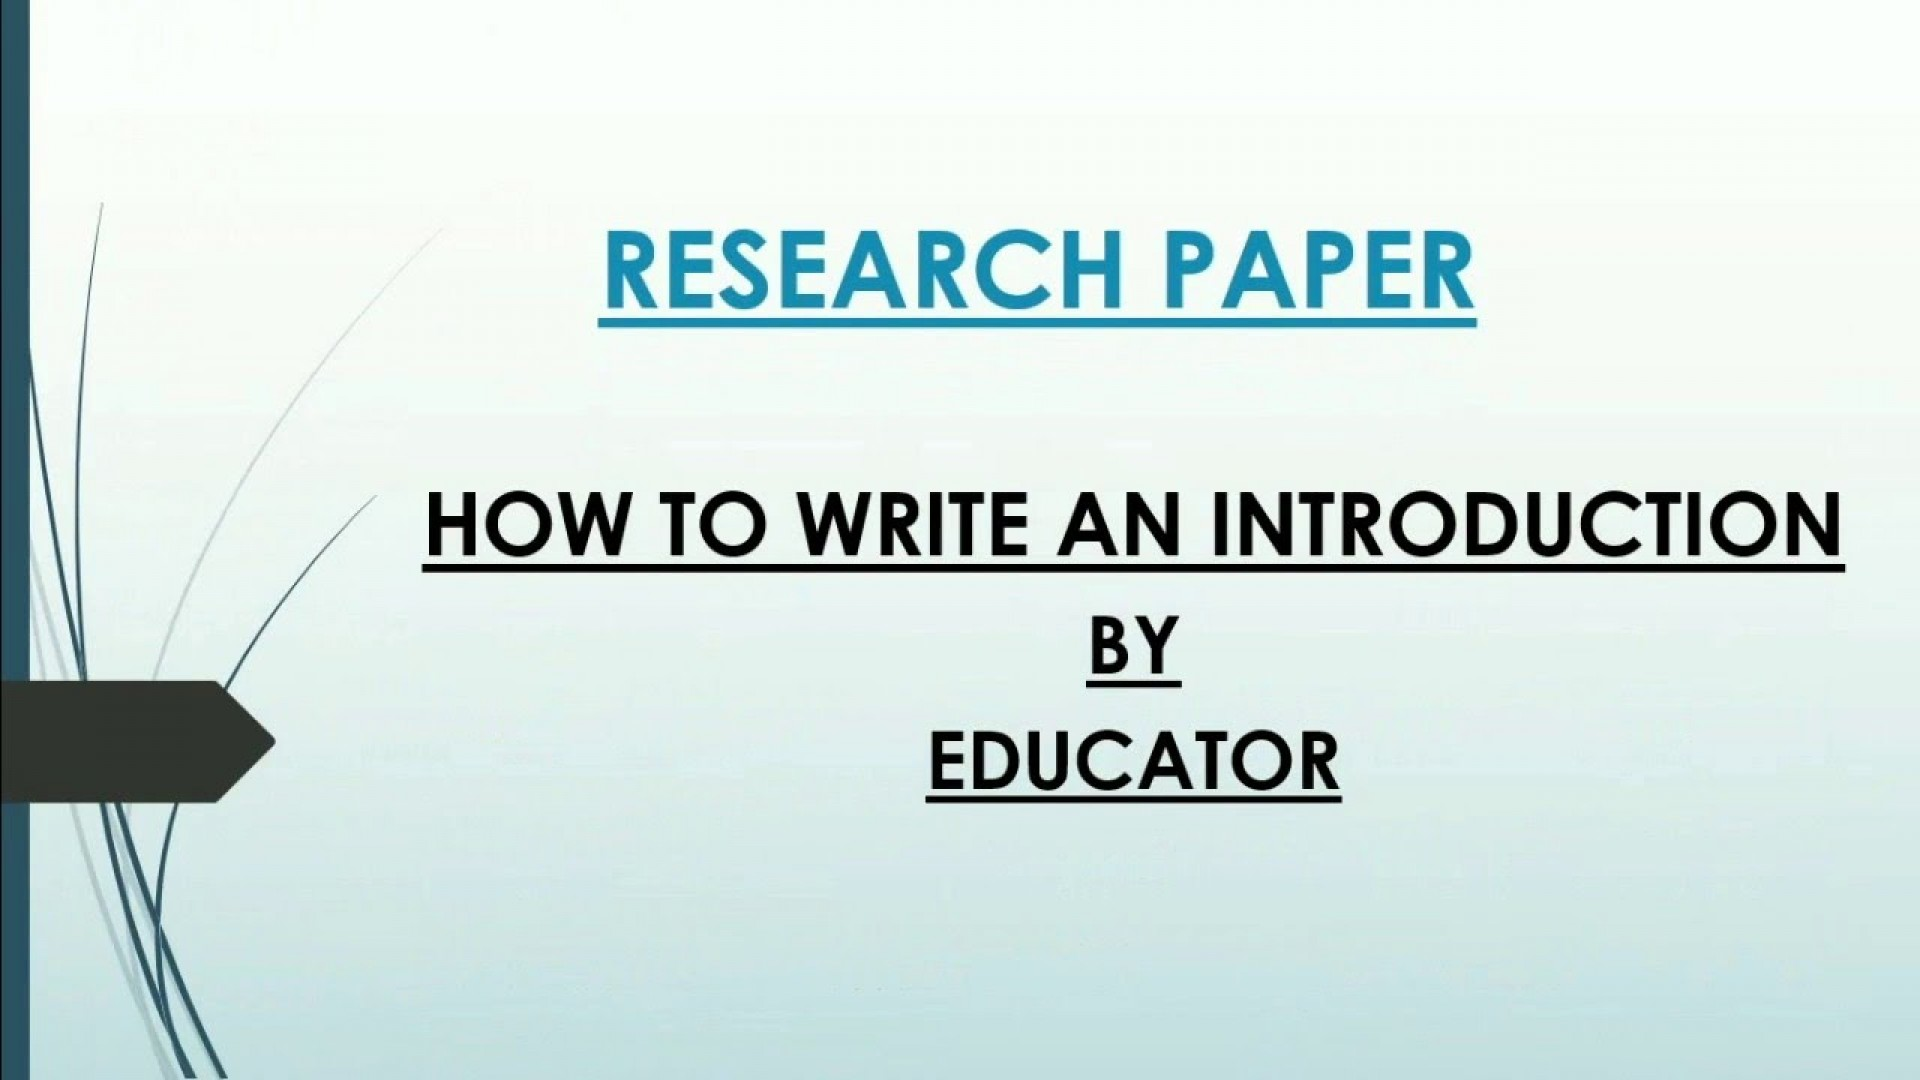 004 Research Paper How To Write Introduction Stunning Examples A Pdf An Effective 1920